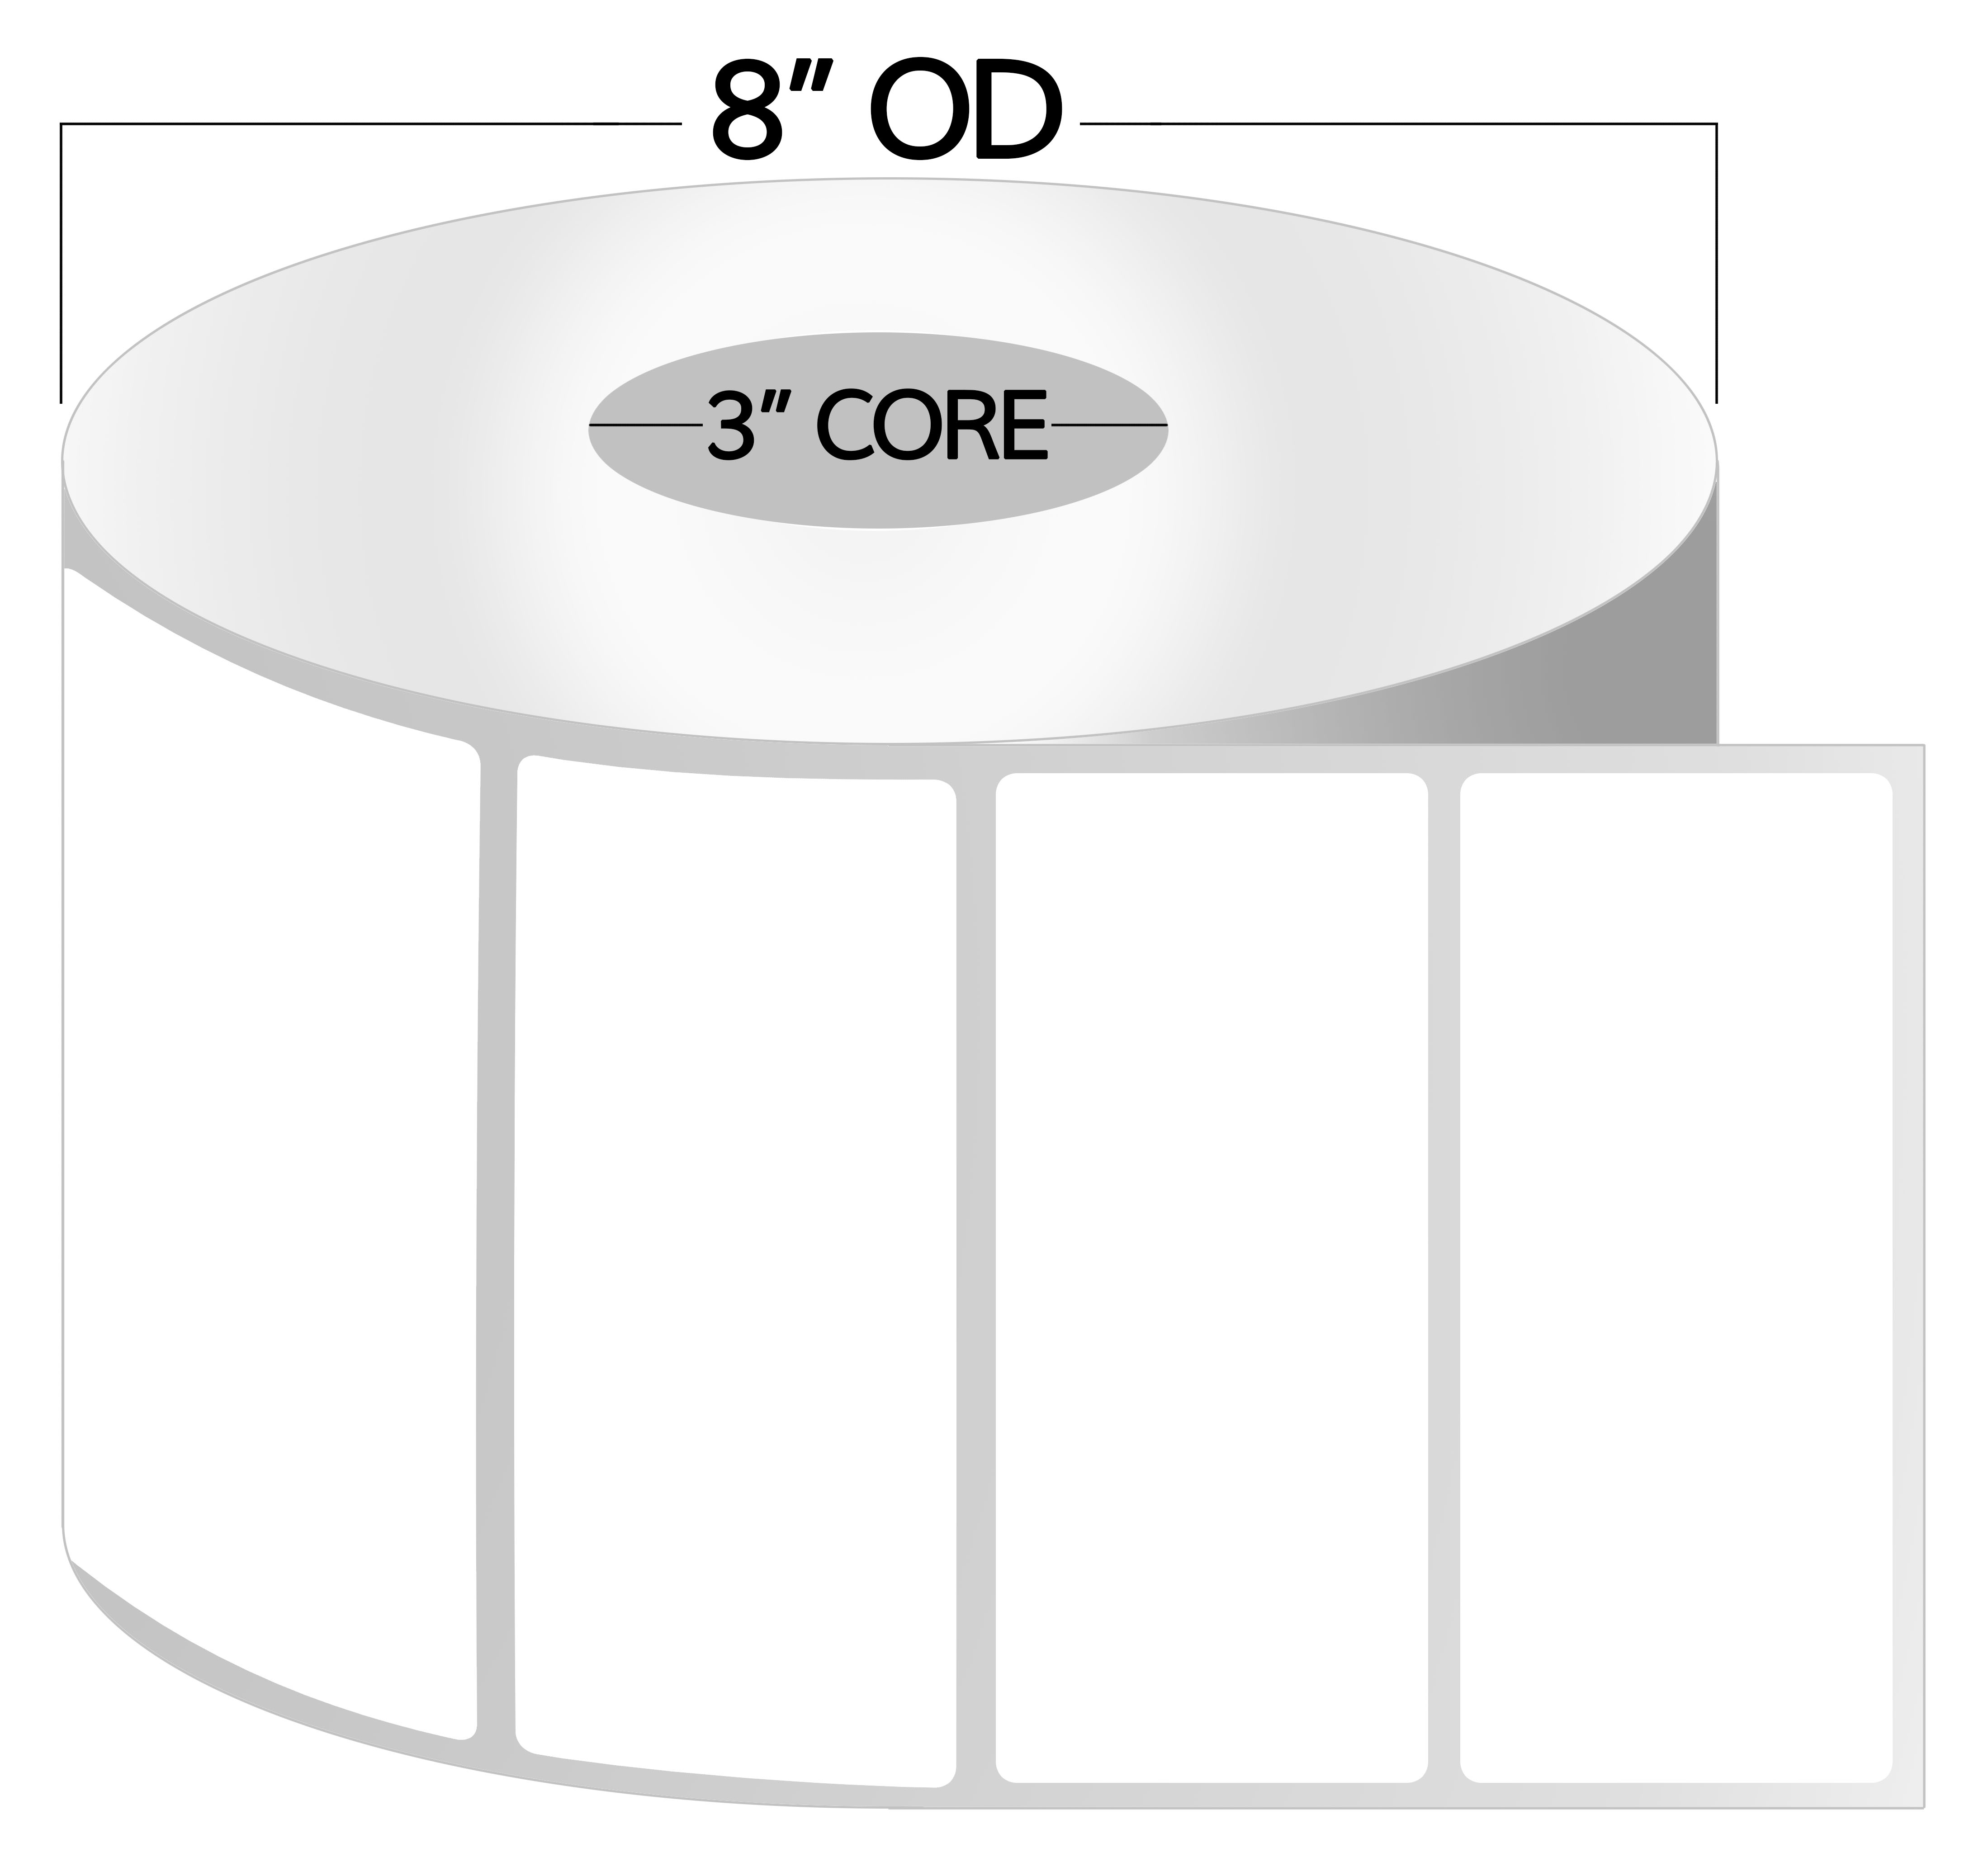 3 Inch Core - 4 x 1 Zebra Compatible Direct Thermal Labels 1 Roll